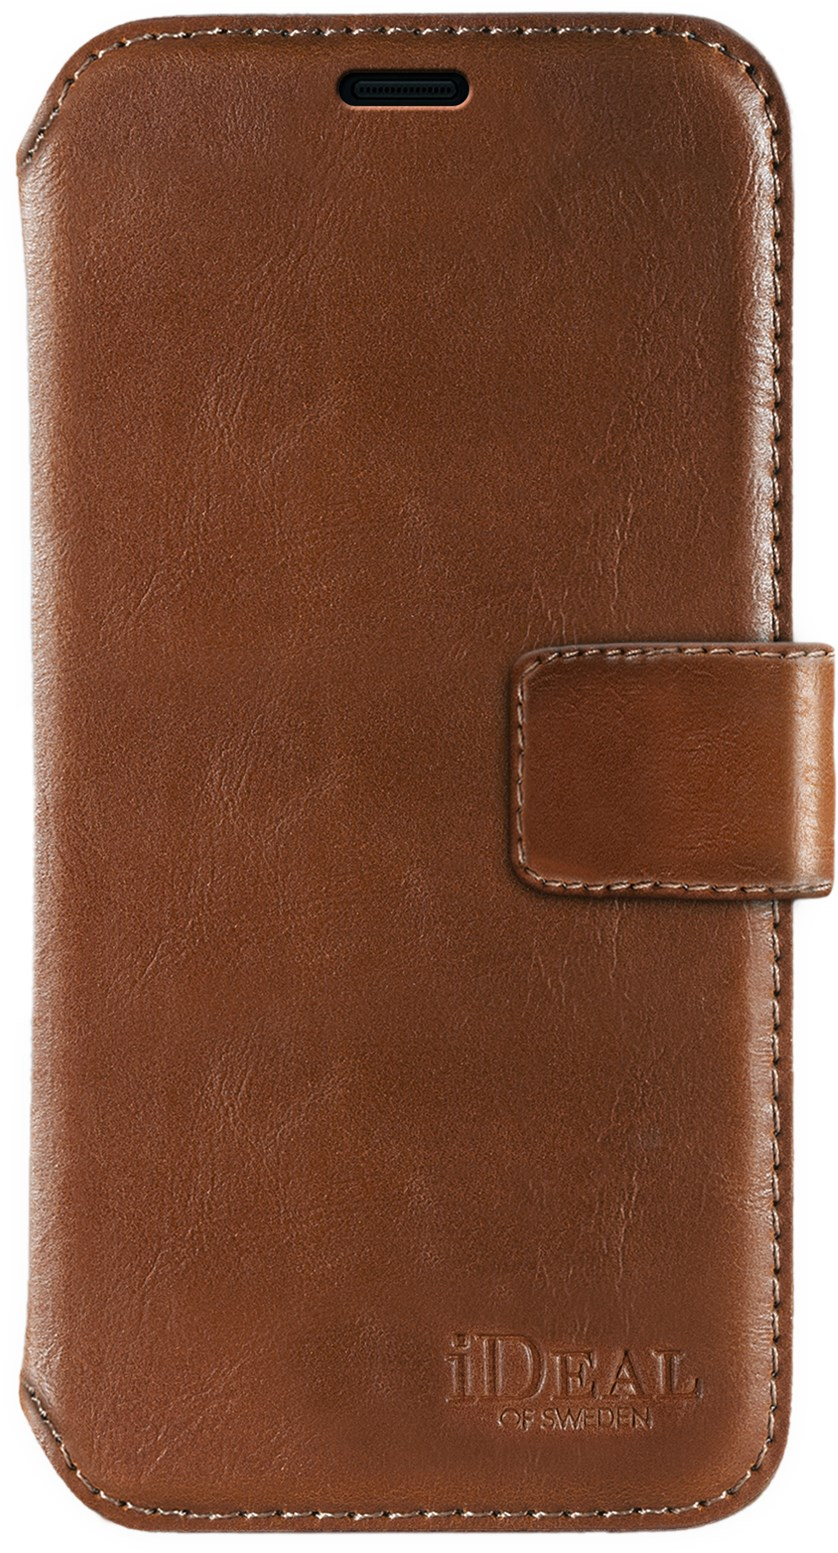 iDeal of Sweden Ideal Sthlm Wallet Samsung Galaxy S10 Plus Brown